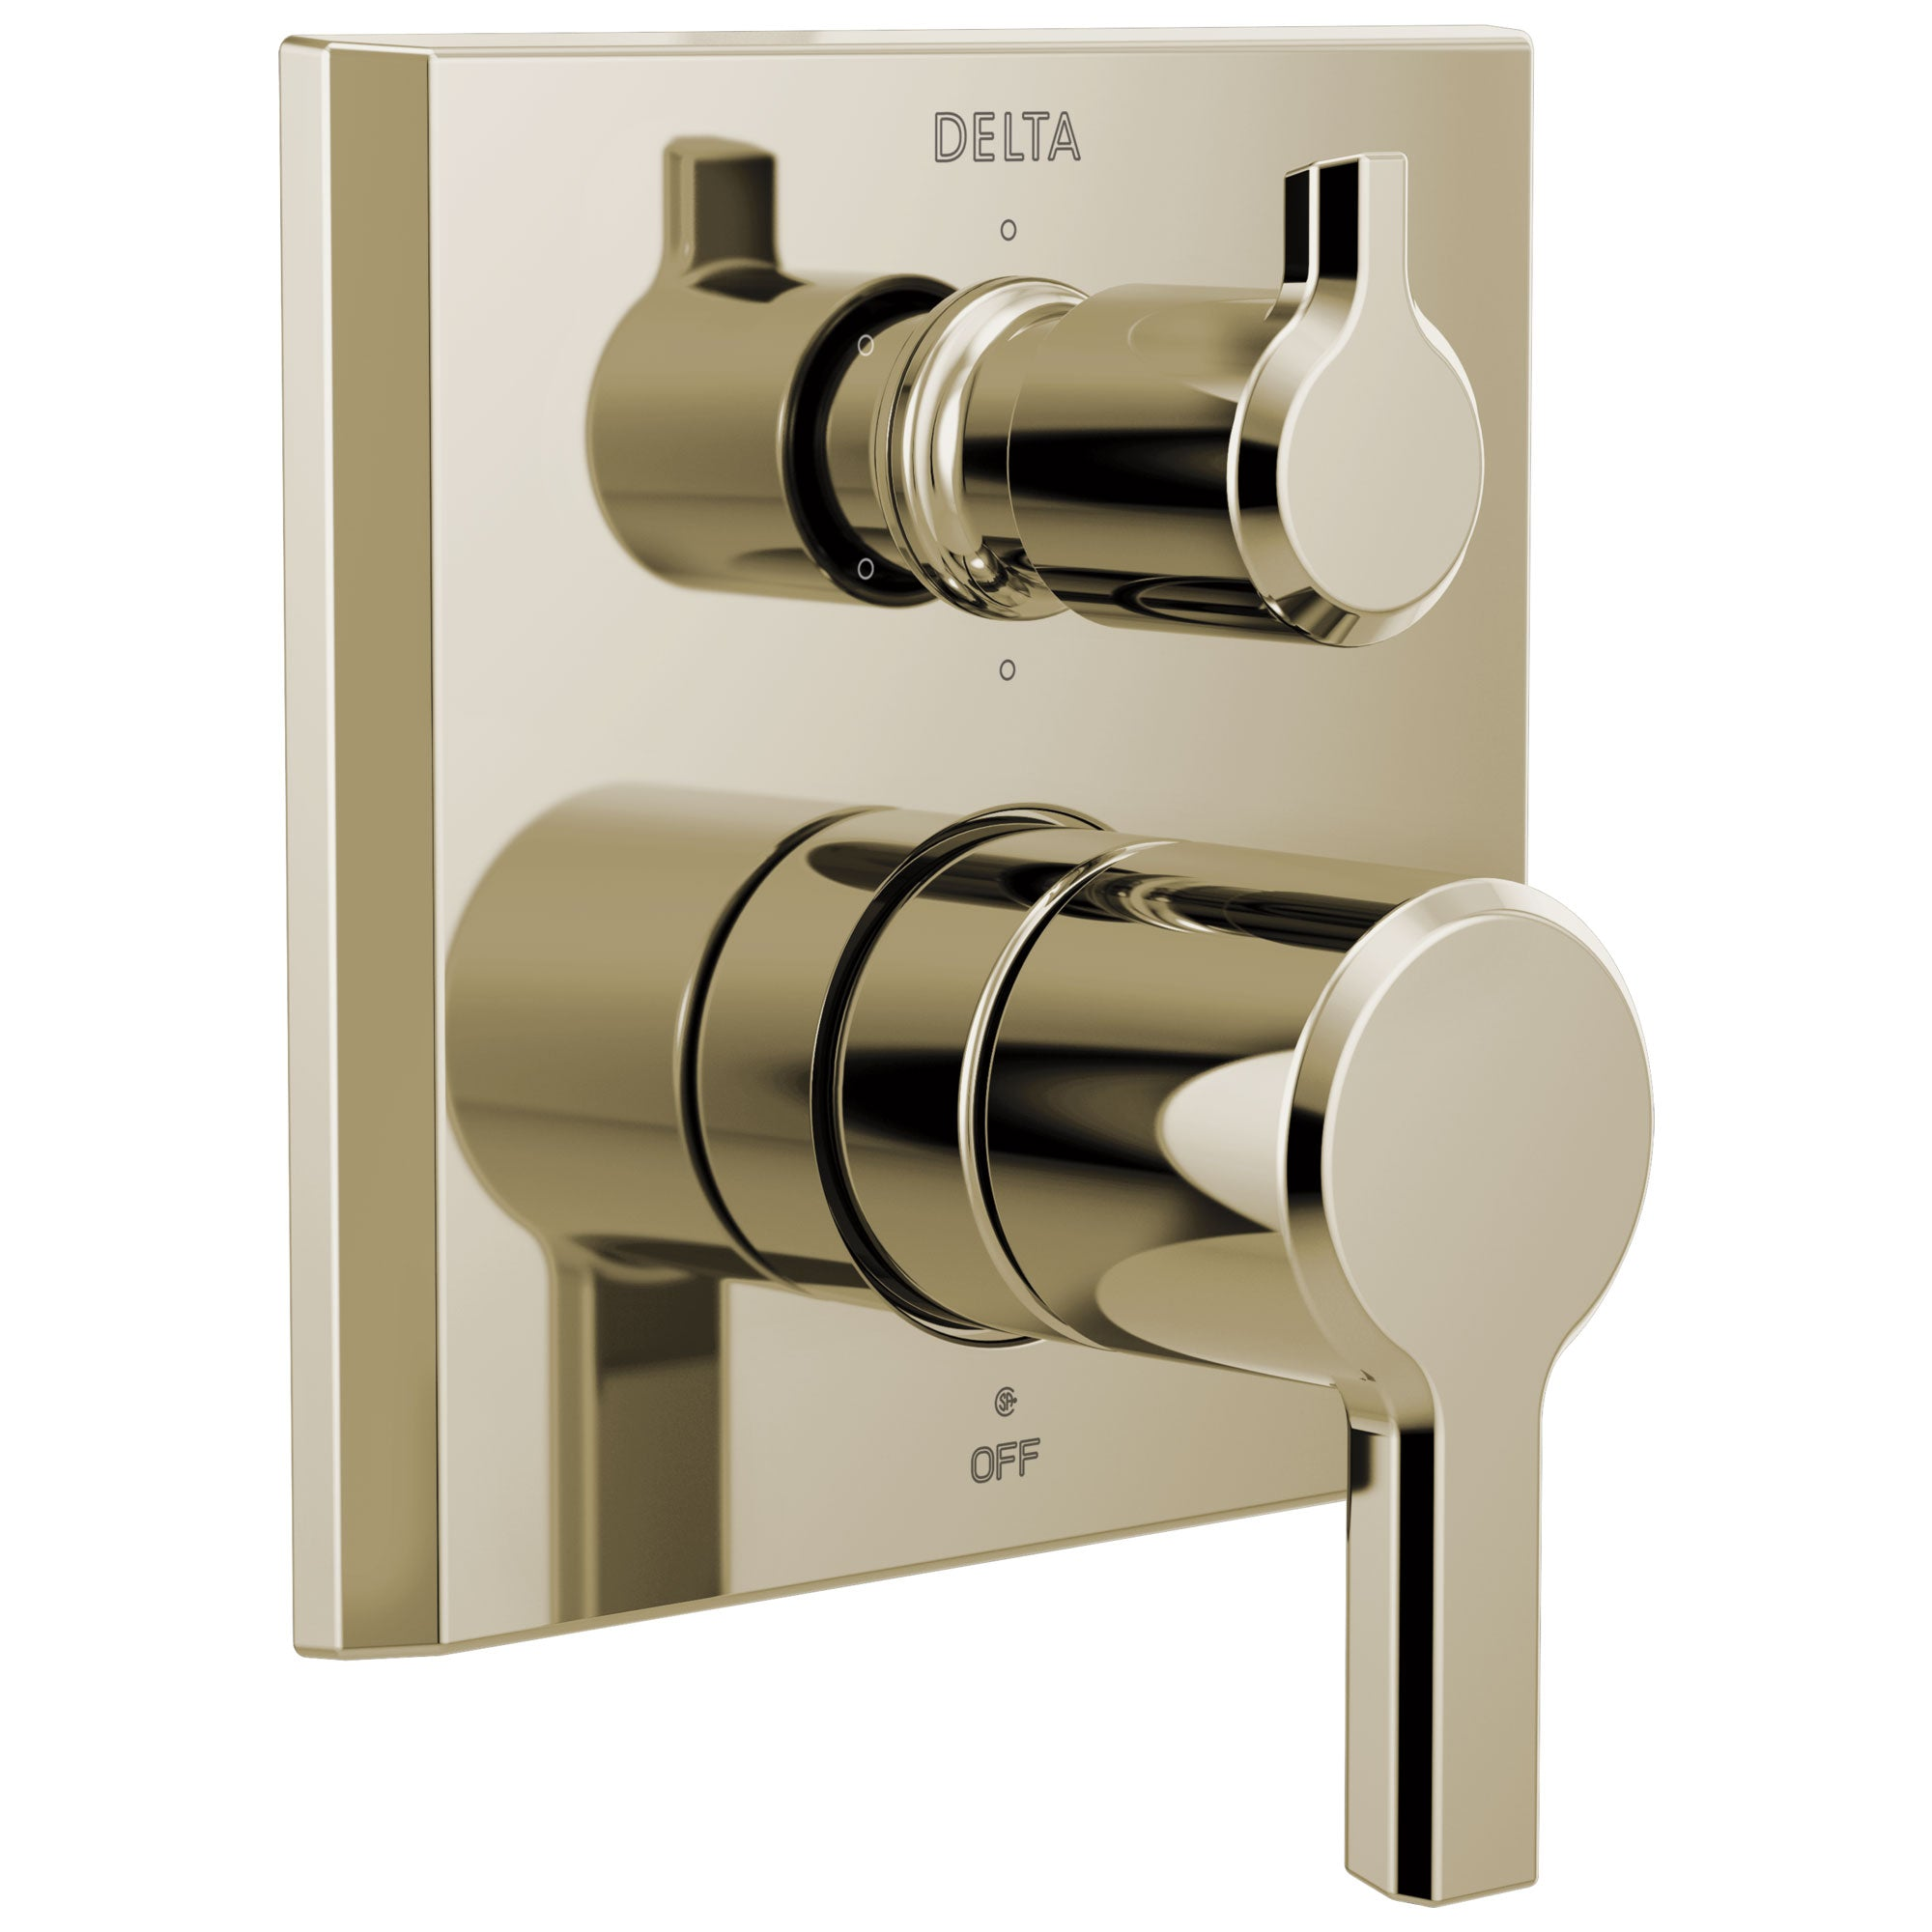 Delta Pivotal Polished Nickel Finish 14 Series Integrated 6 Function Diverter Modern Shower System Control Includes Valve and Handles D3739V